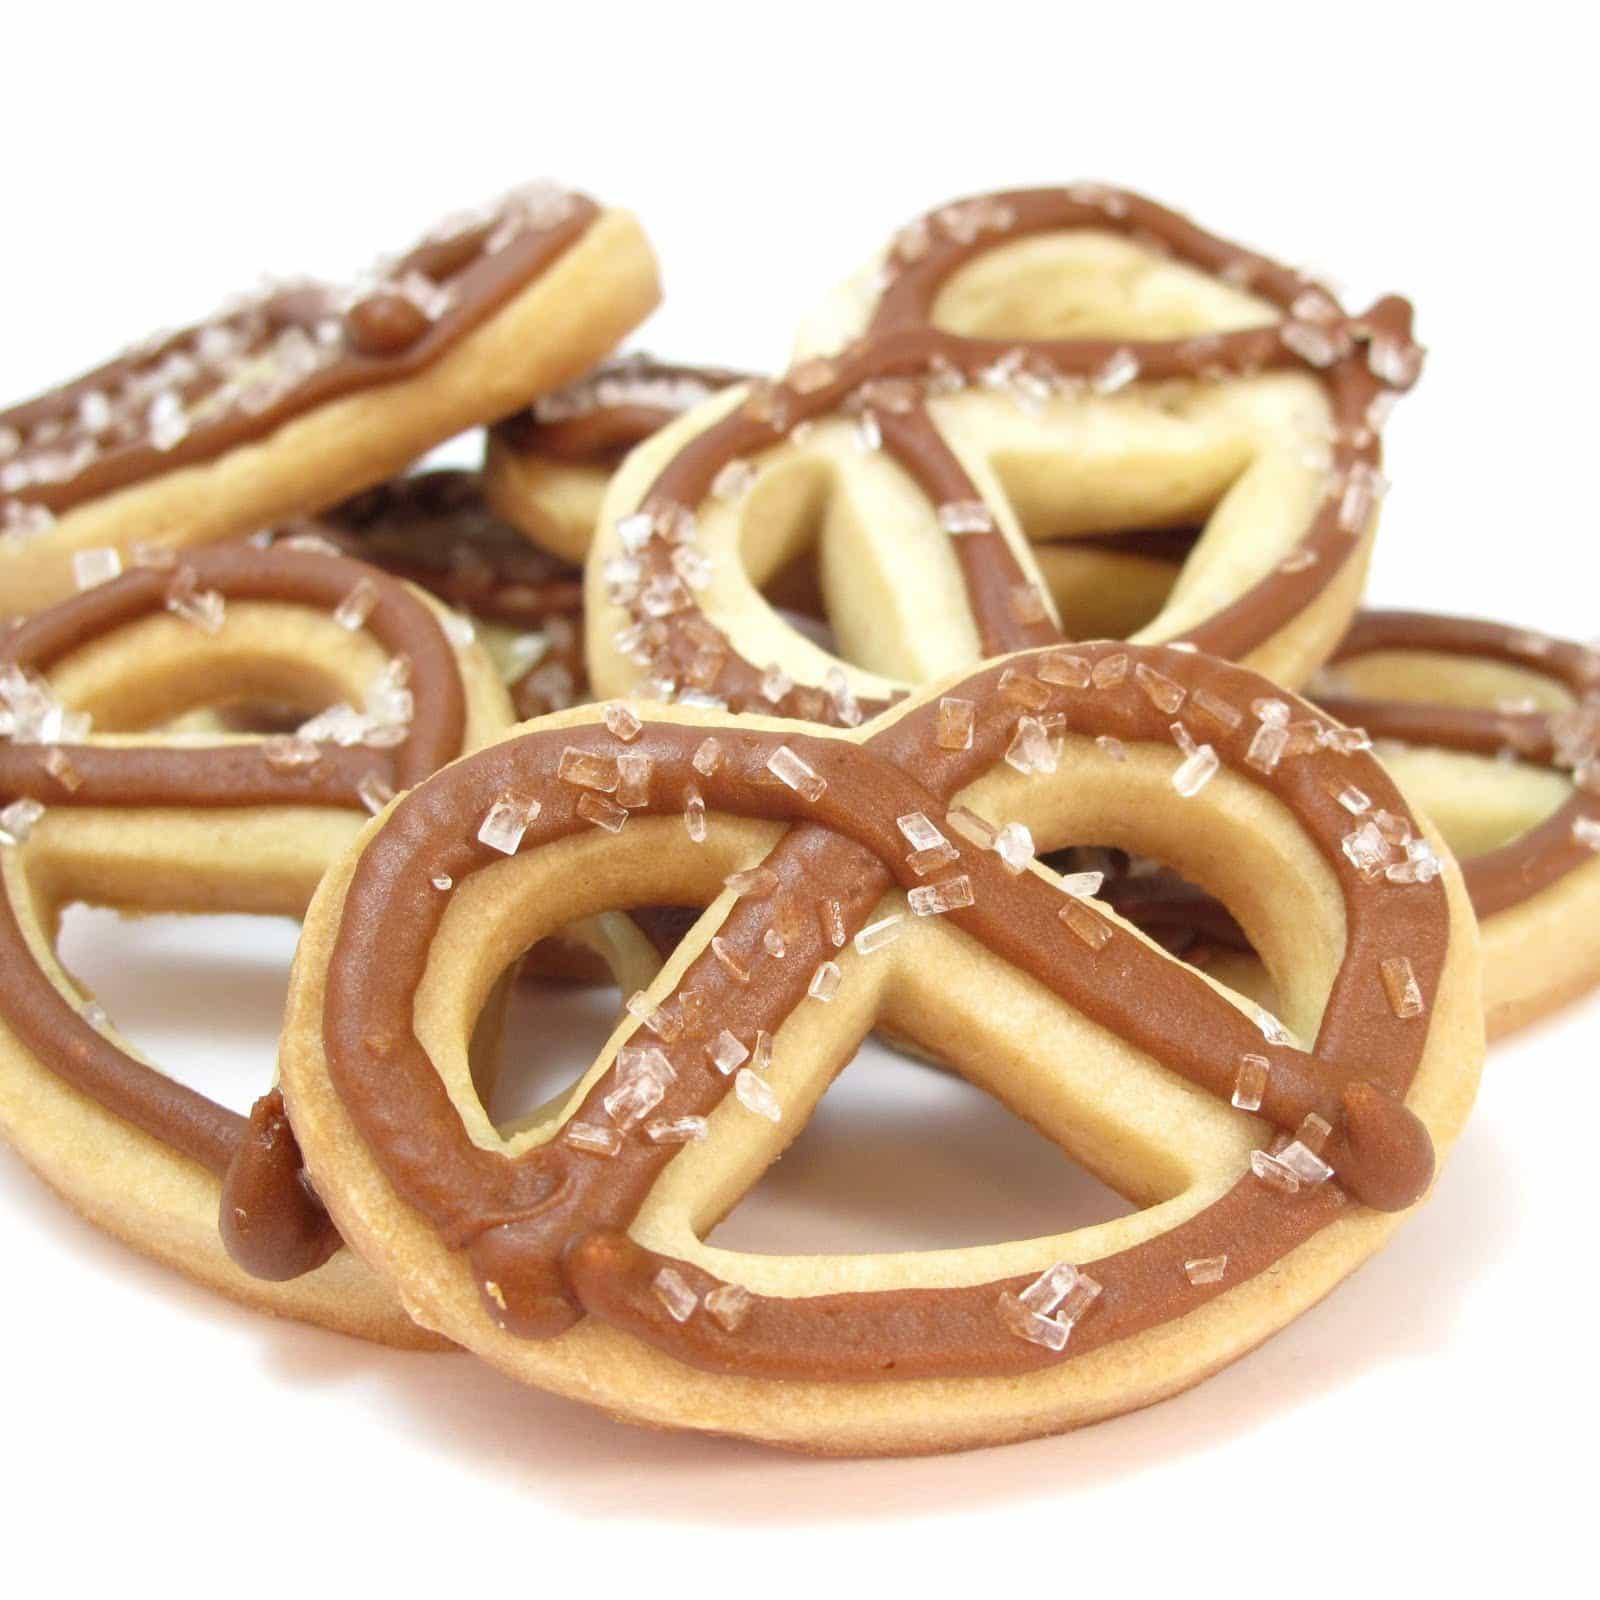 Pretzel Cookies Cute Decorated Cookie Idea For A Party Snack